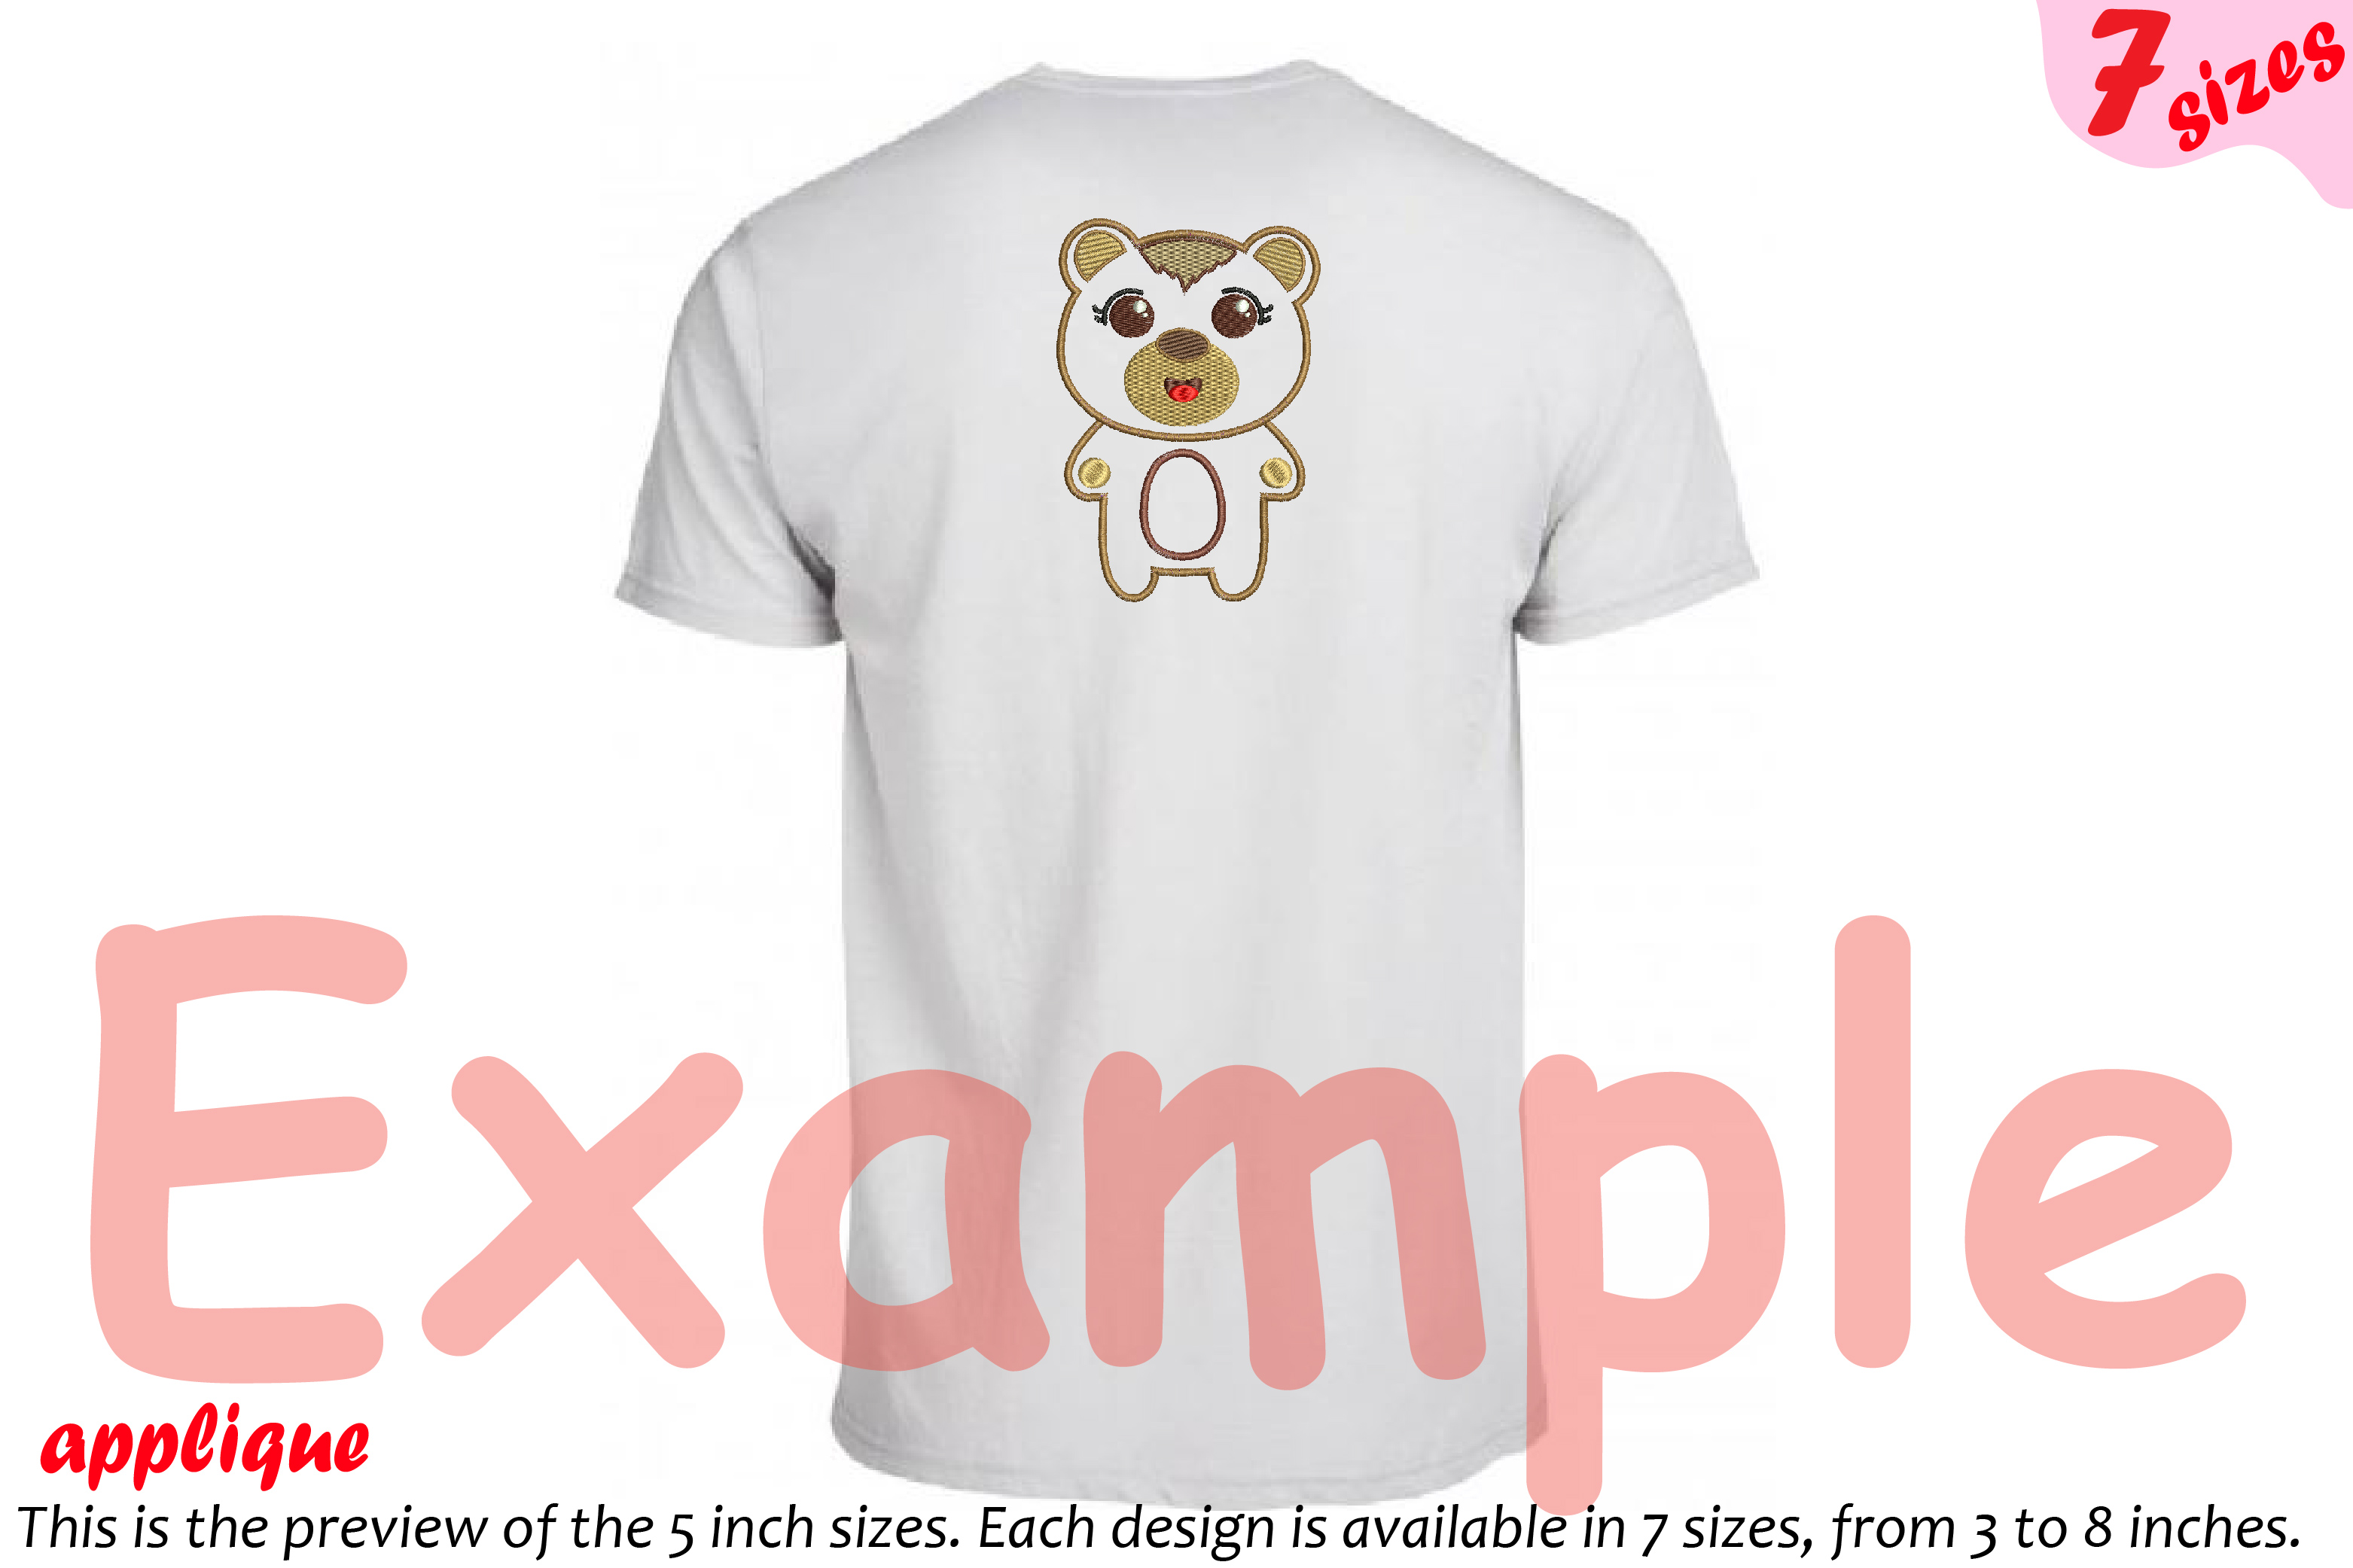 Baby Bear Applique Designs For Embroidery Machine Instant Download Commercial Use Symbol Outline Woodland Animals Cartoon Cute Emoji 16a 51625 Embroidery Design Bundles